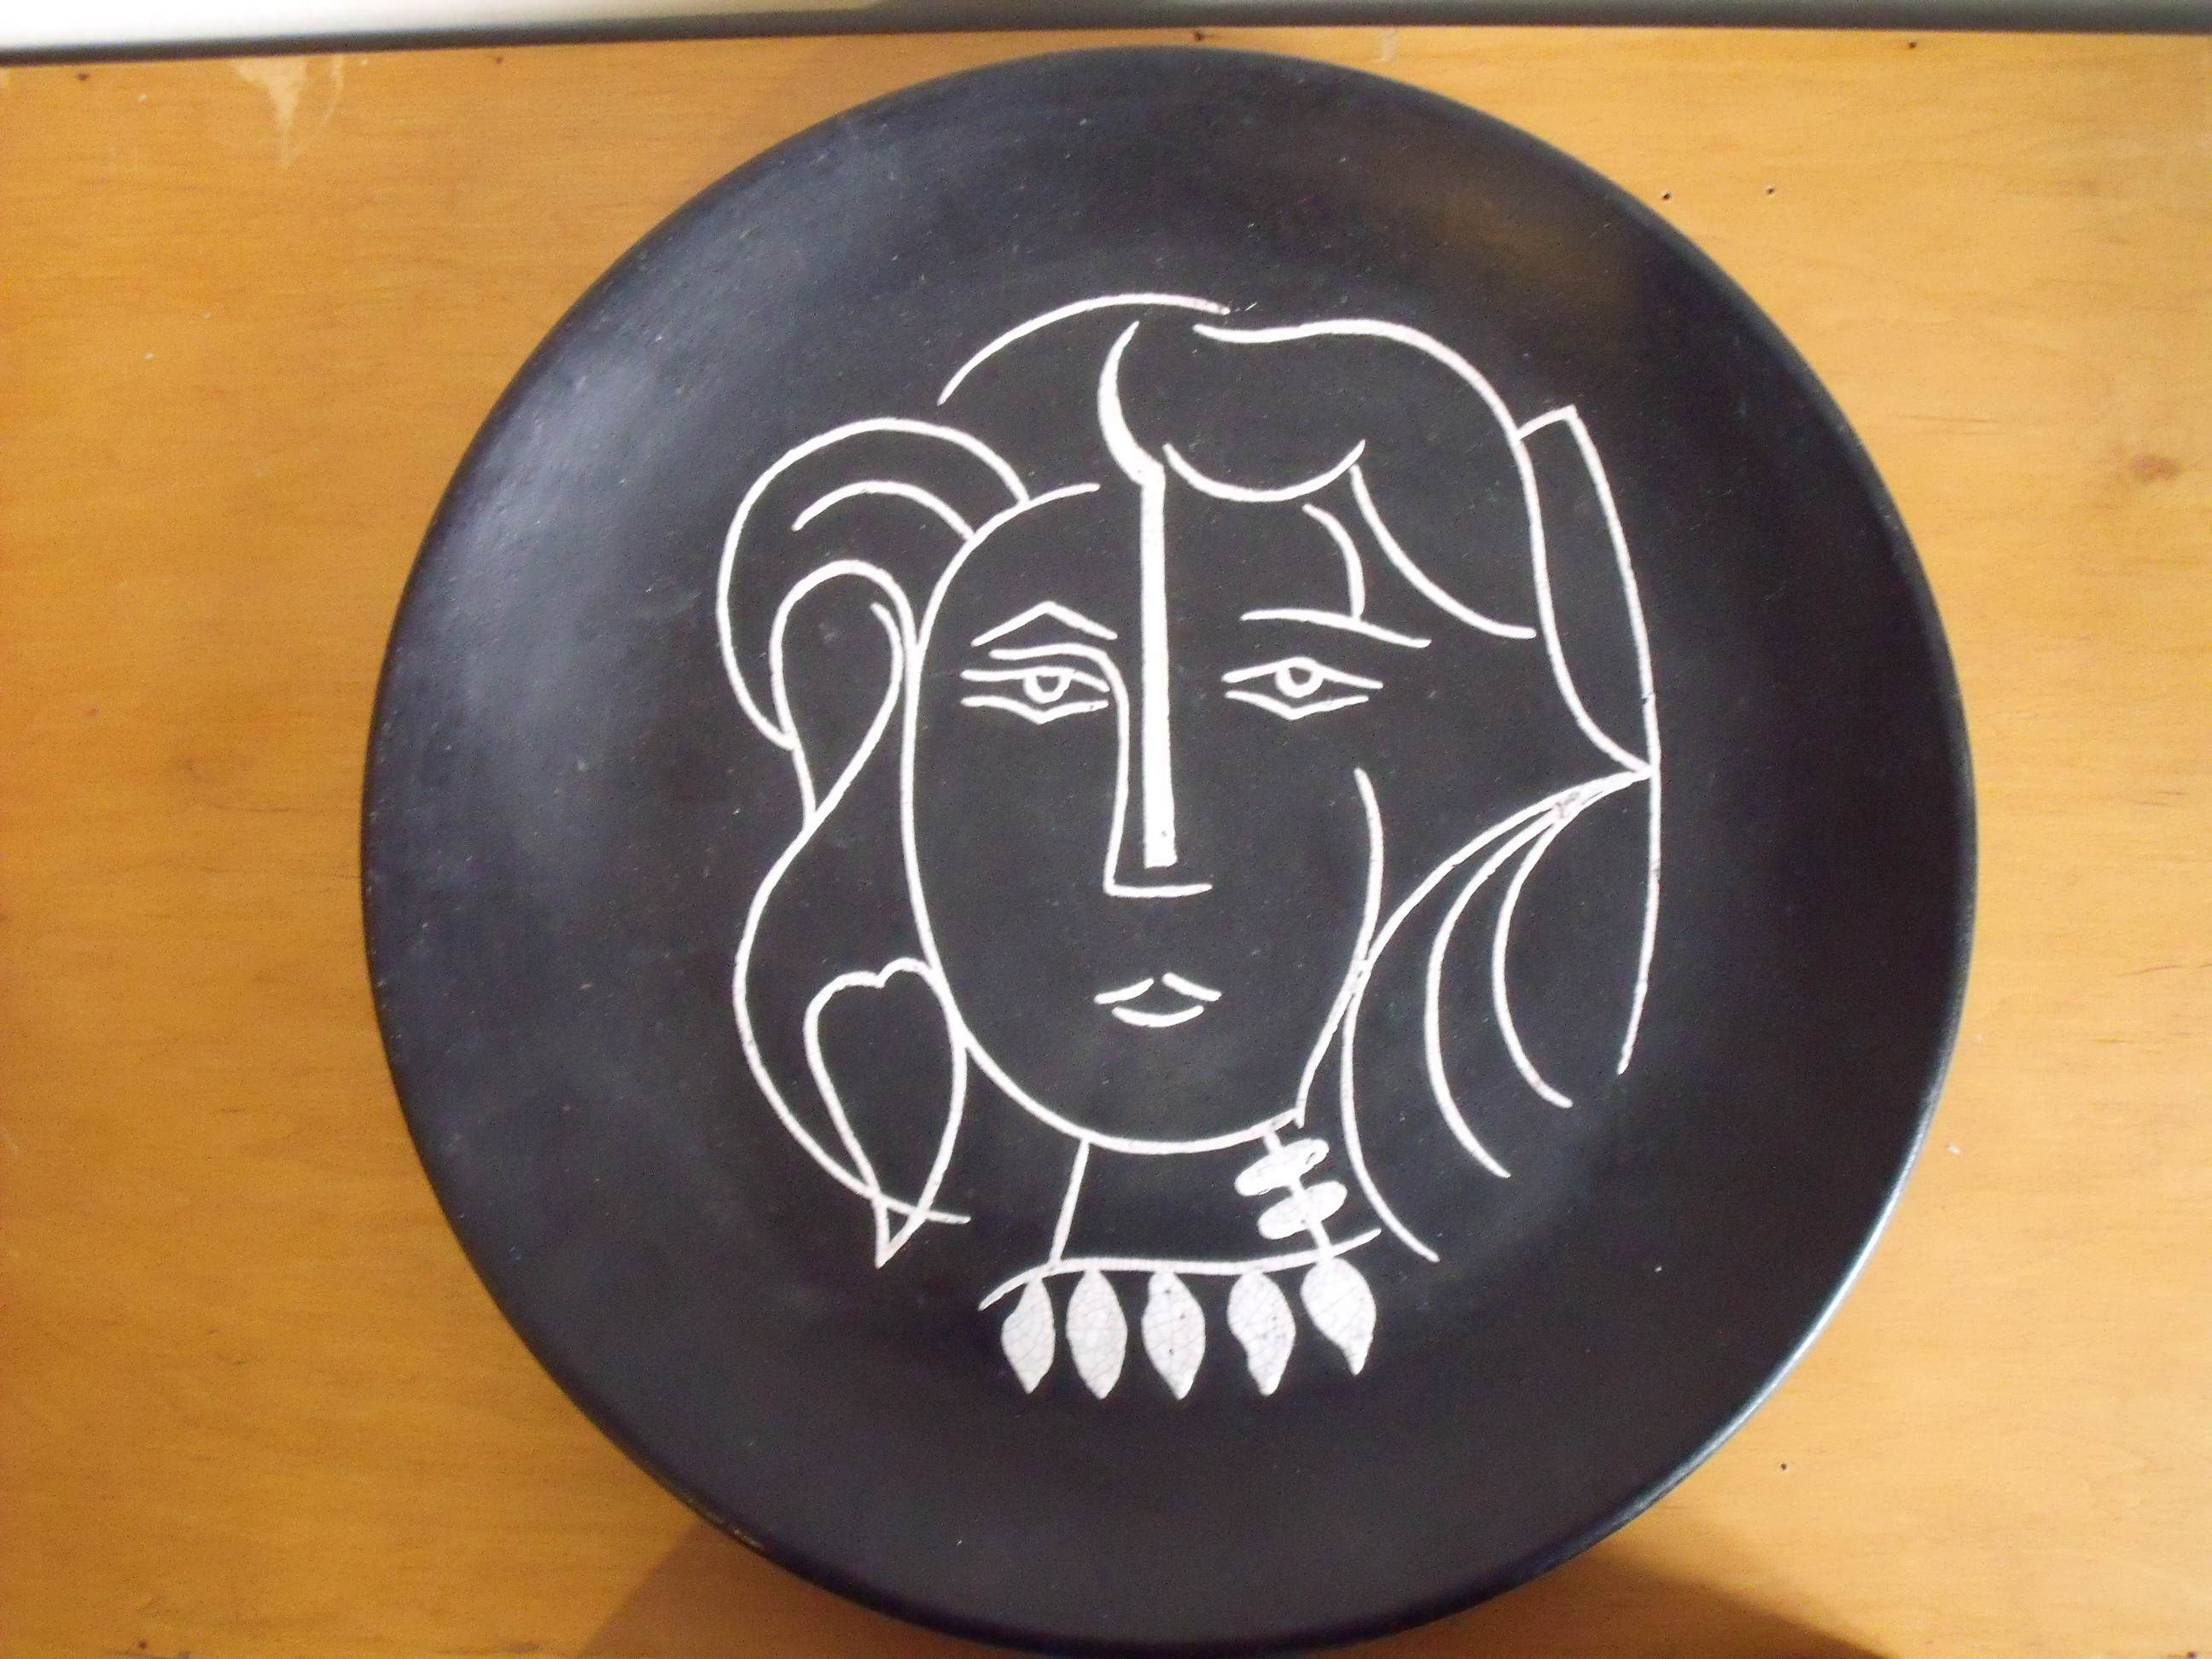 Picasso Cubist Faces By picasso; �woman's face